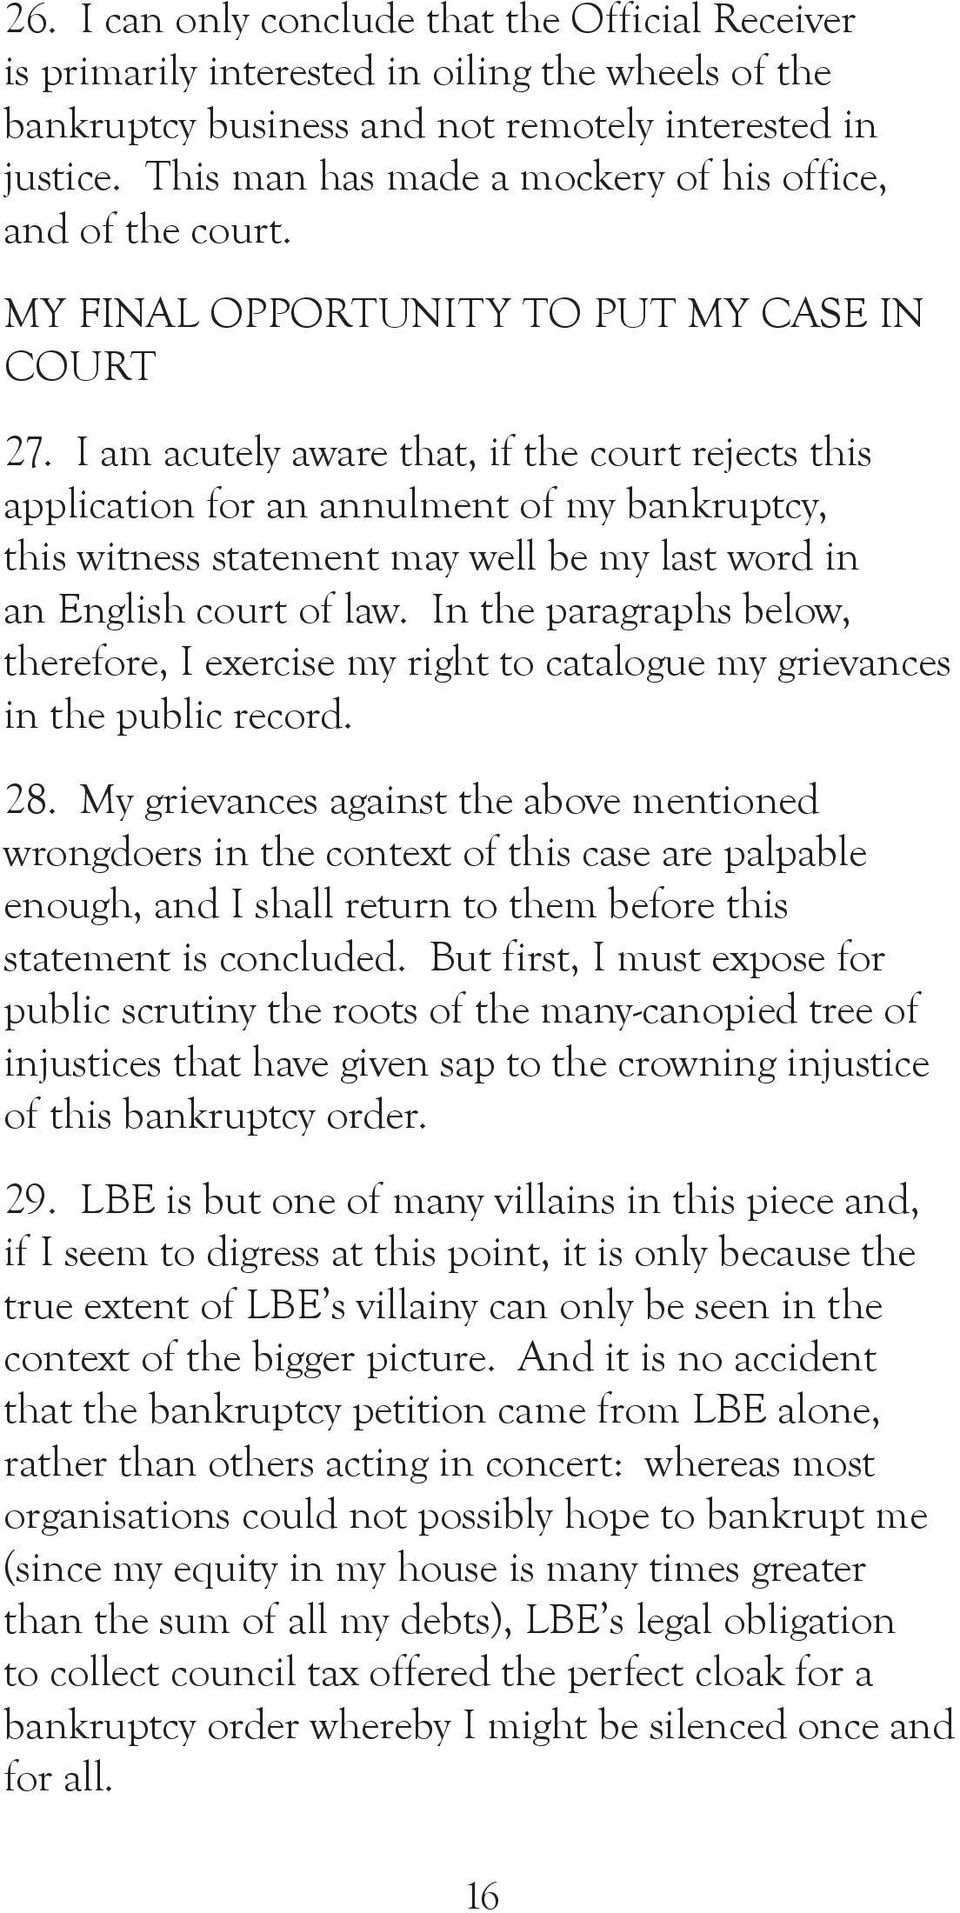 I am acutely aware that, if the court rejects this application for an annulment of my bankruptcy, this witness statement may well be my last word in an English court of law.